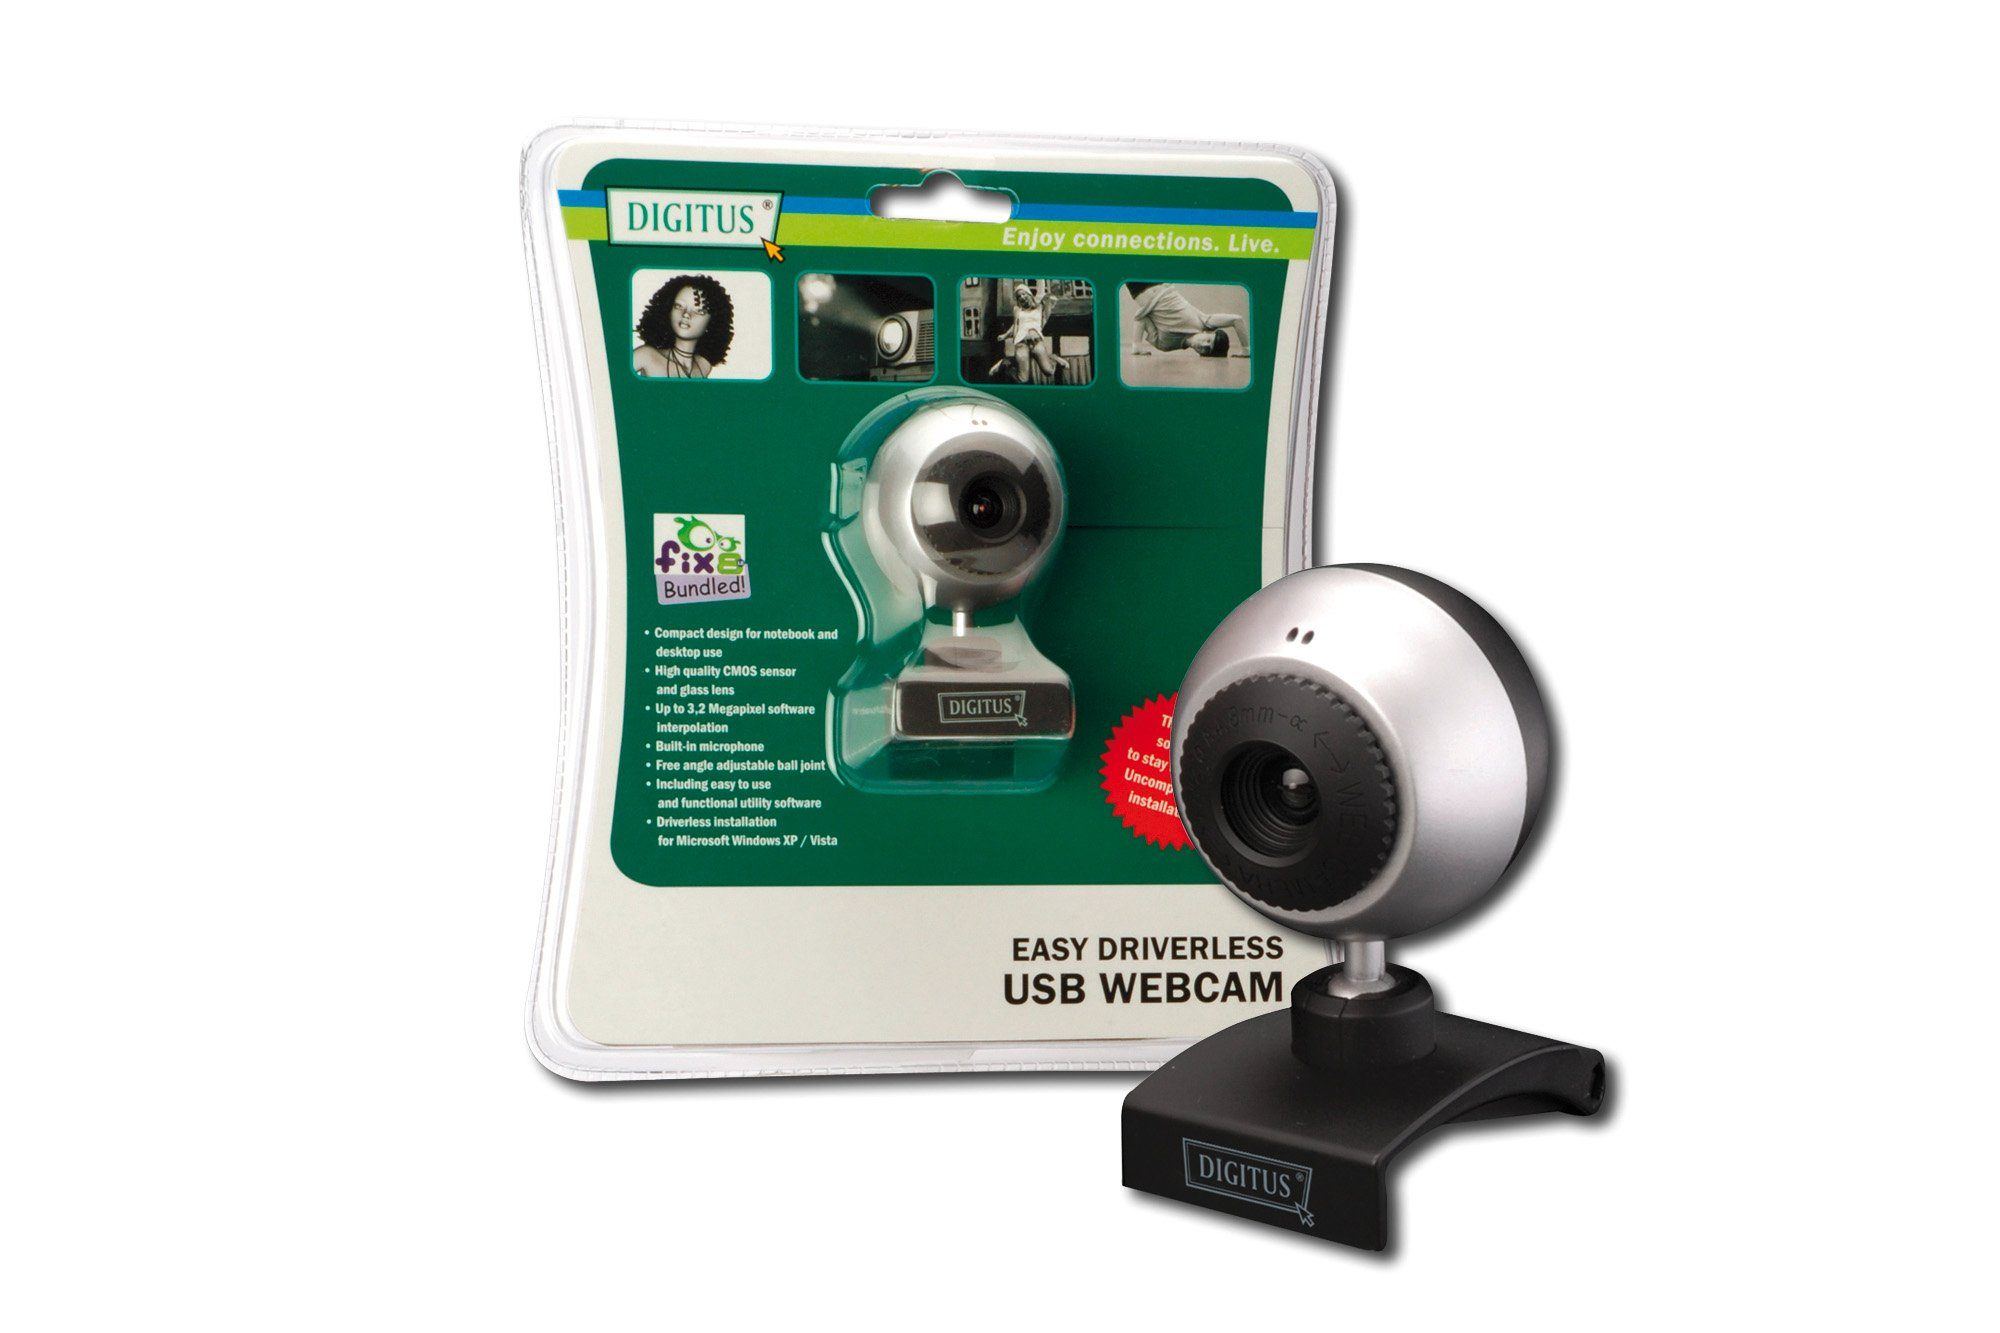 DIGITUS Video Digitus WebCam DA-70815 USB